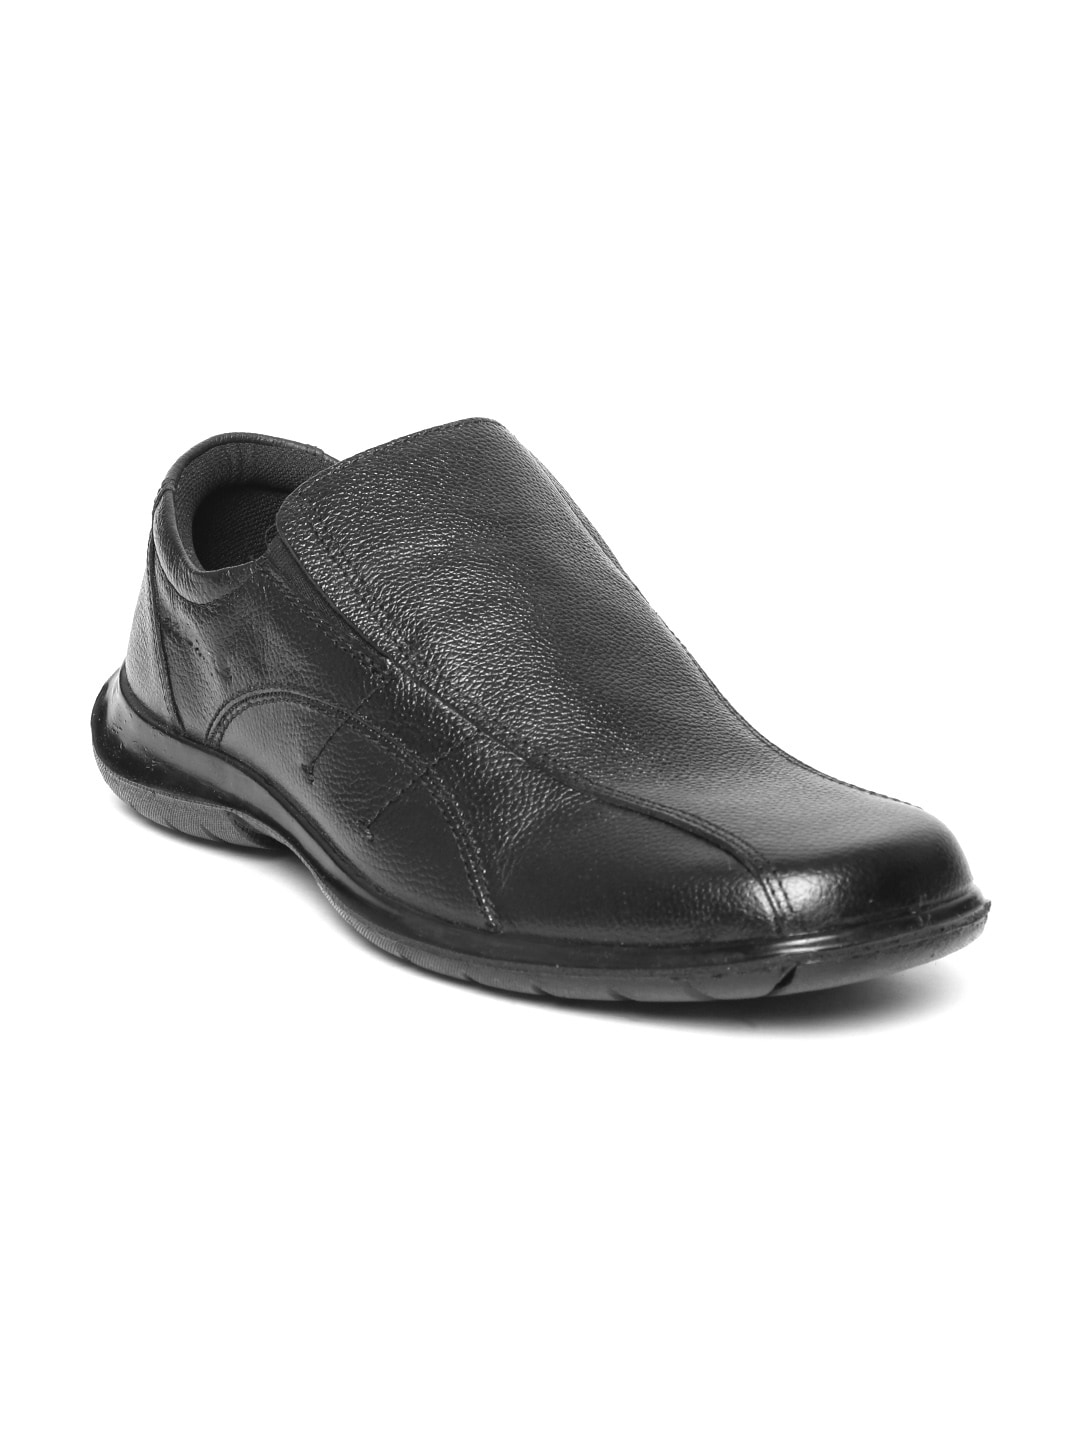 881a80f3783 Red tape rts7301b-black Men Black Leather Textured Loafers- Price in India